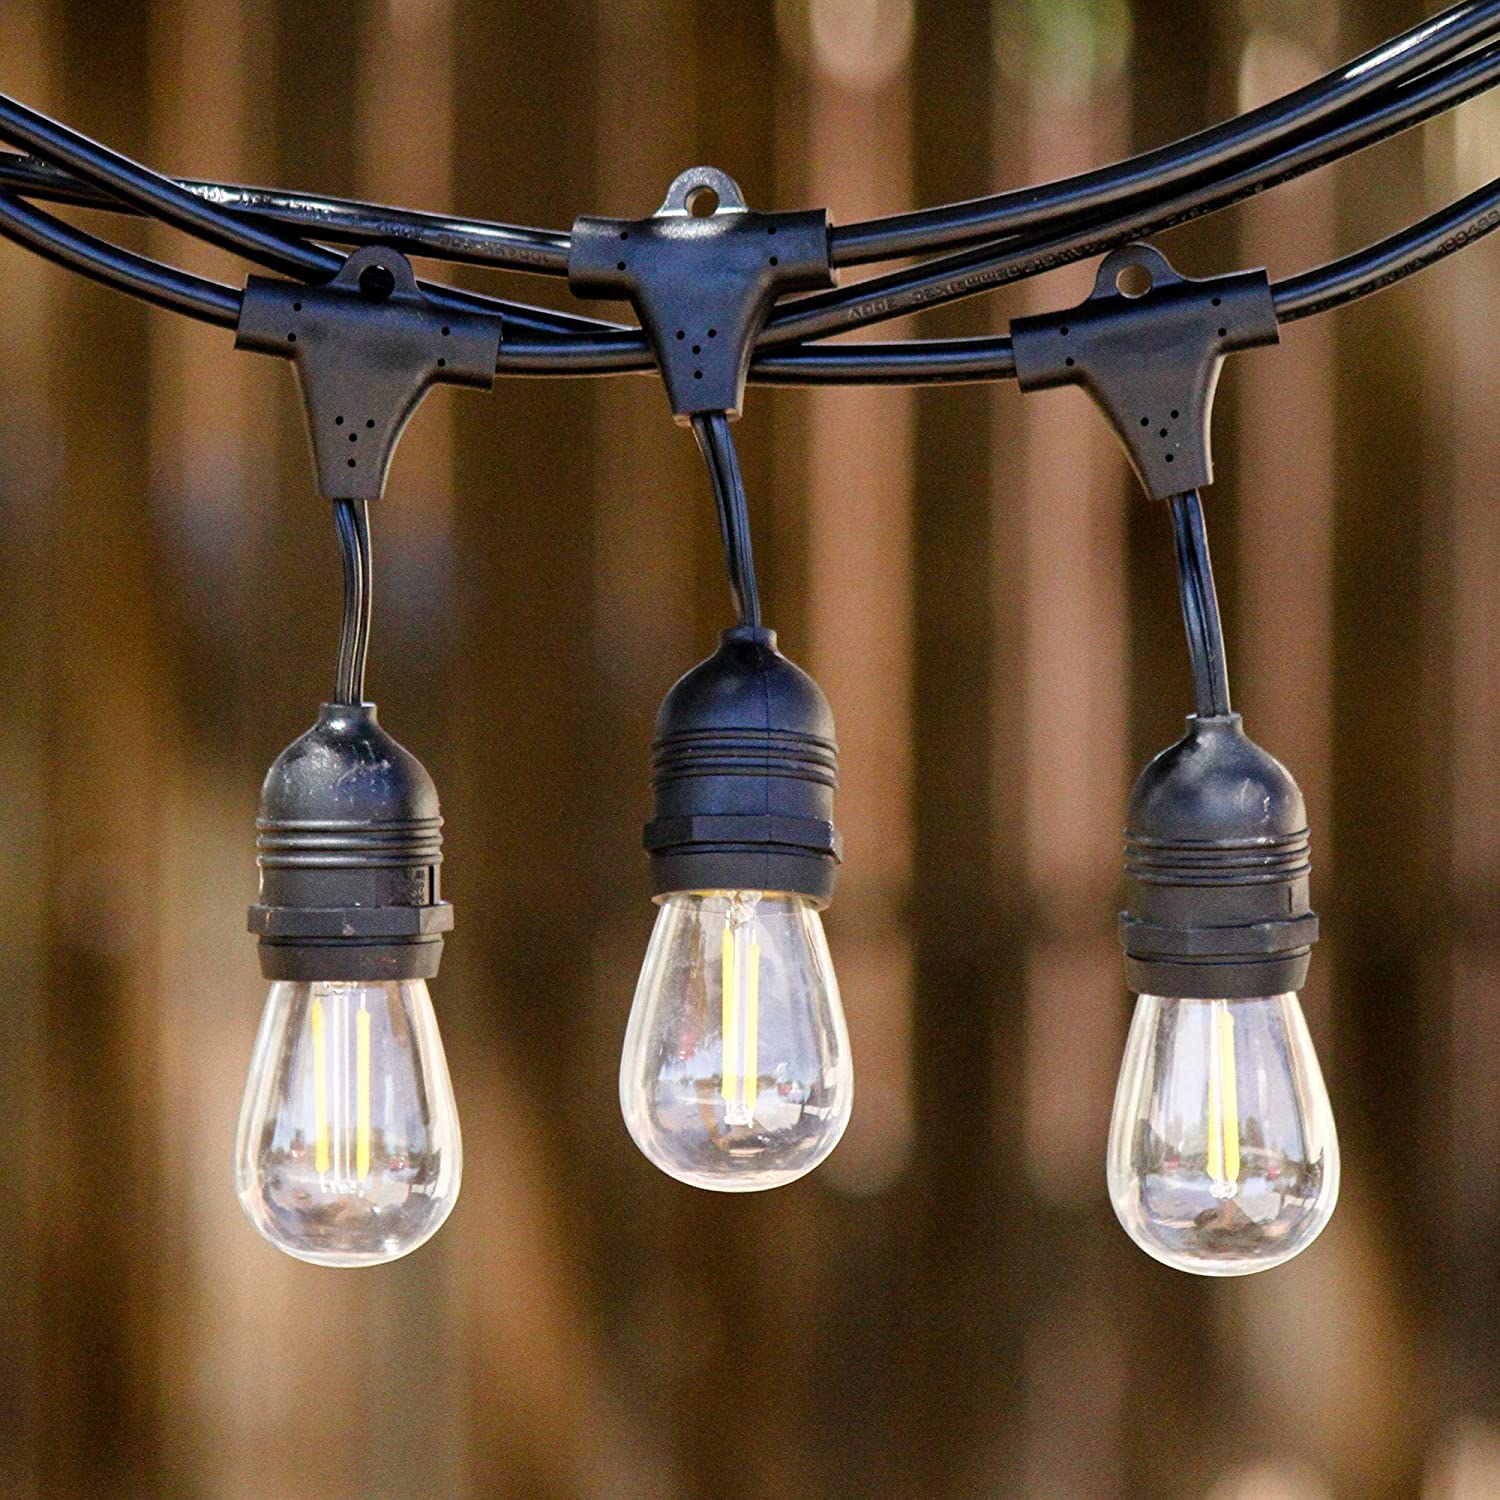 Amazon low e led outdoor string lights weatherproof amazon low e led outdoor string lights weatherproof commercial grade 15 hanging sockets 18 2 watt dimmable led bulbs 3 extra 10 ft ext workwithnaturefo